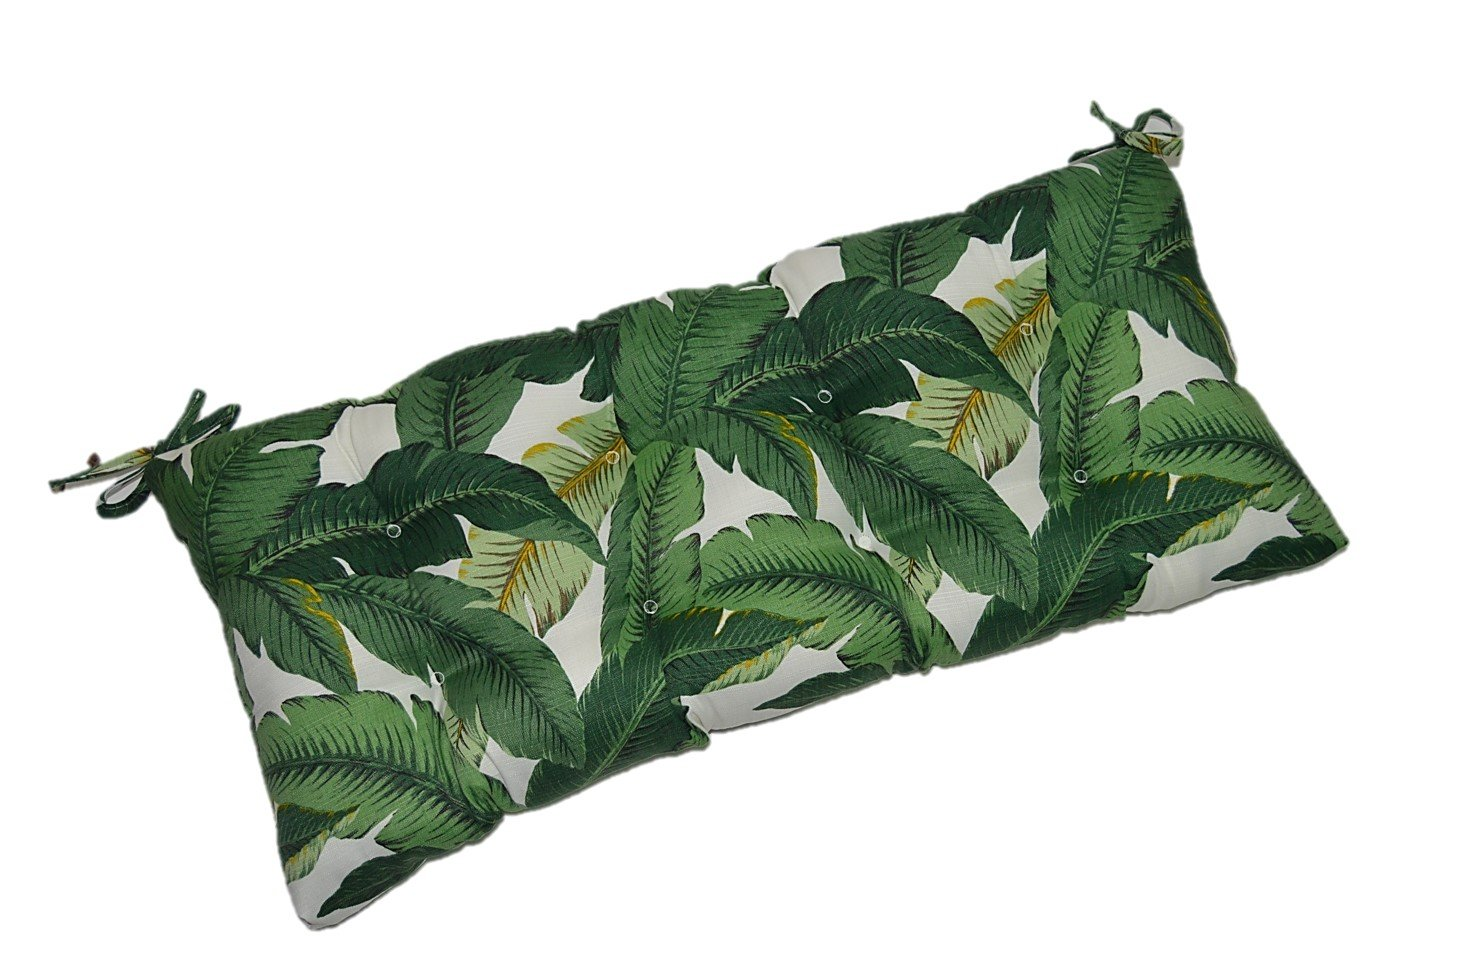 Indoor/Outdoor Tufted Cushion for Bench, Swing, or Glider - Tommy Bahama Swaying Palms - Aloe - Green Tropical Palm Leaf - Choose/Select Size (36'' X 14'')